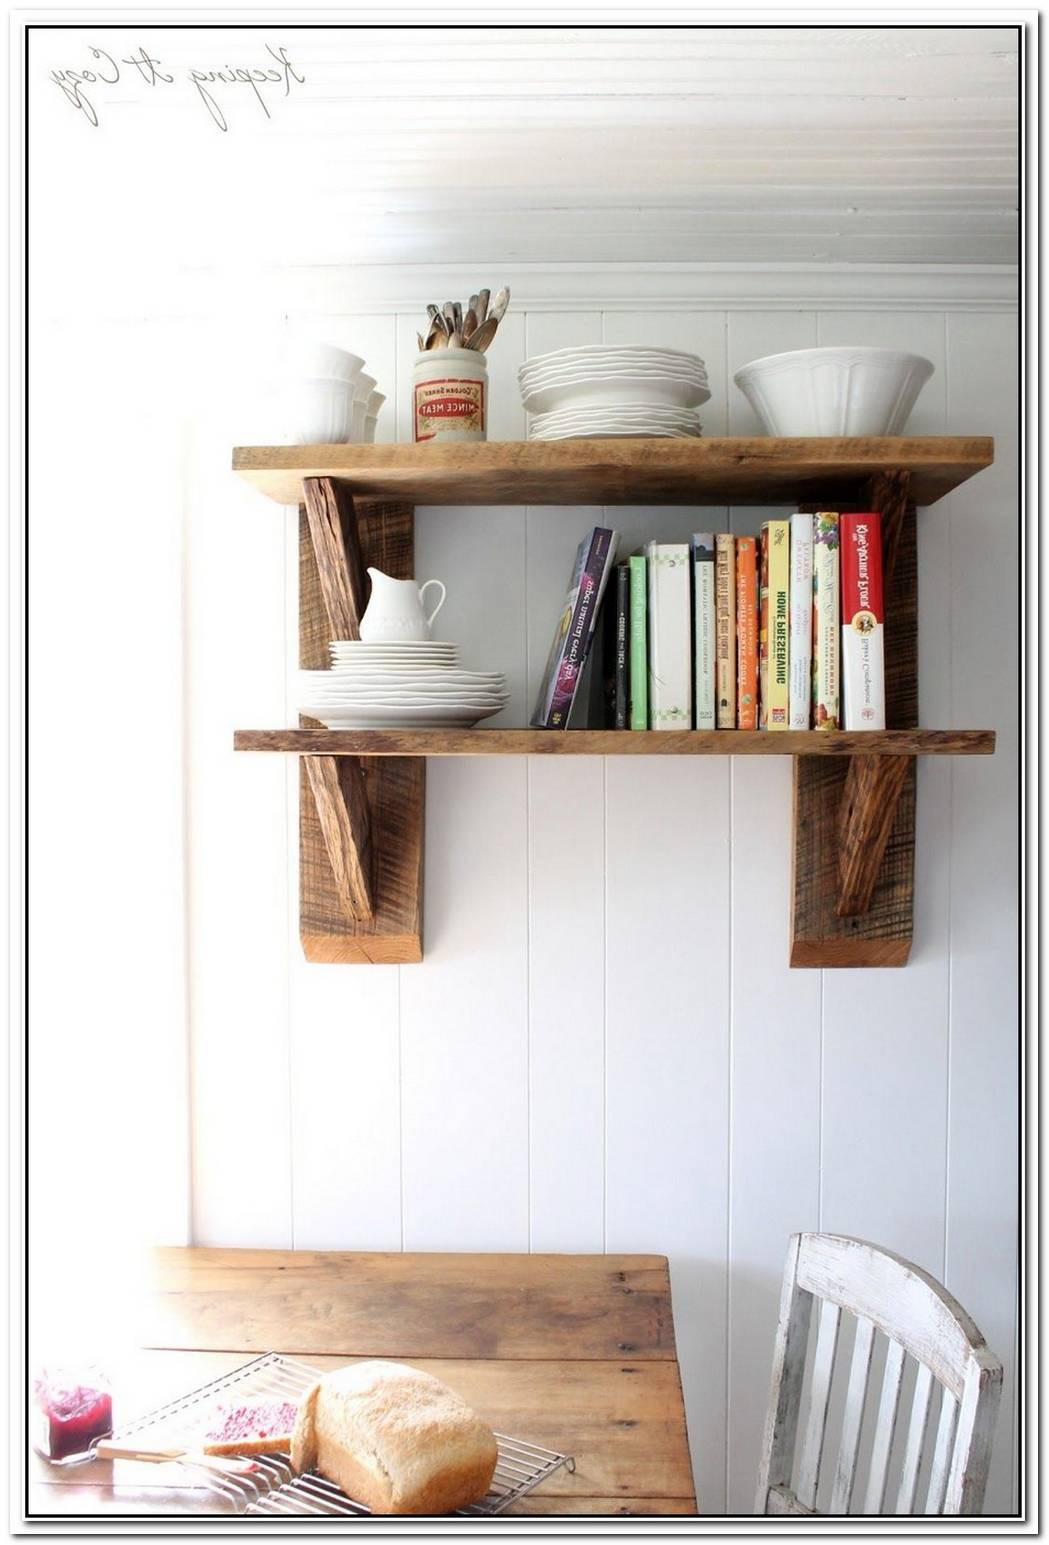 Log Shelves Bring A Piece Of Nature Into Your Home